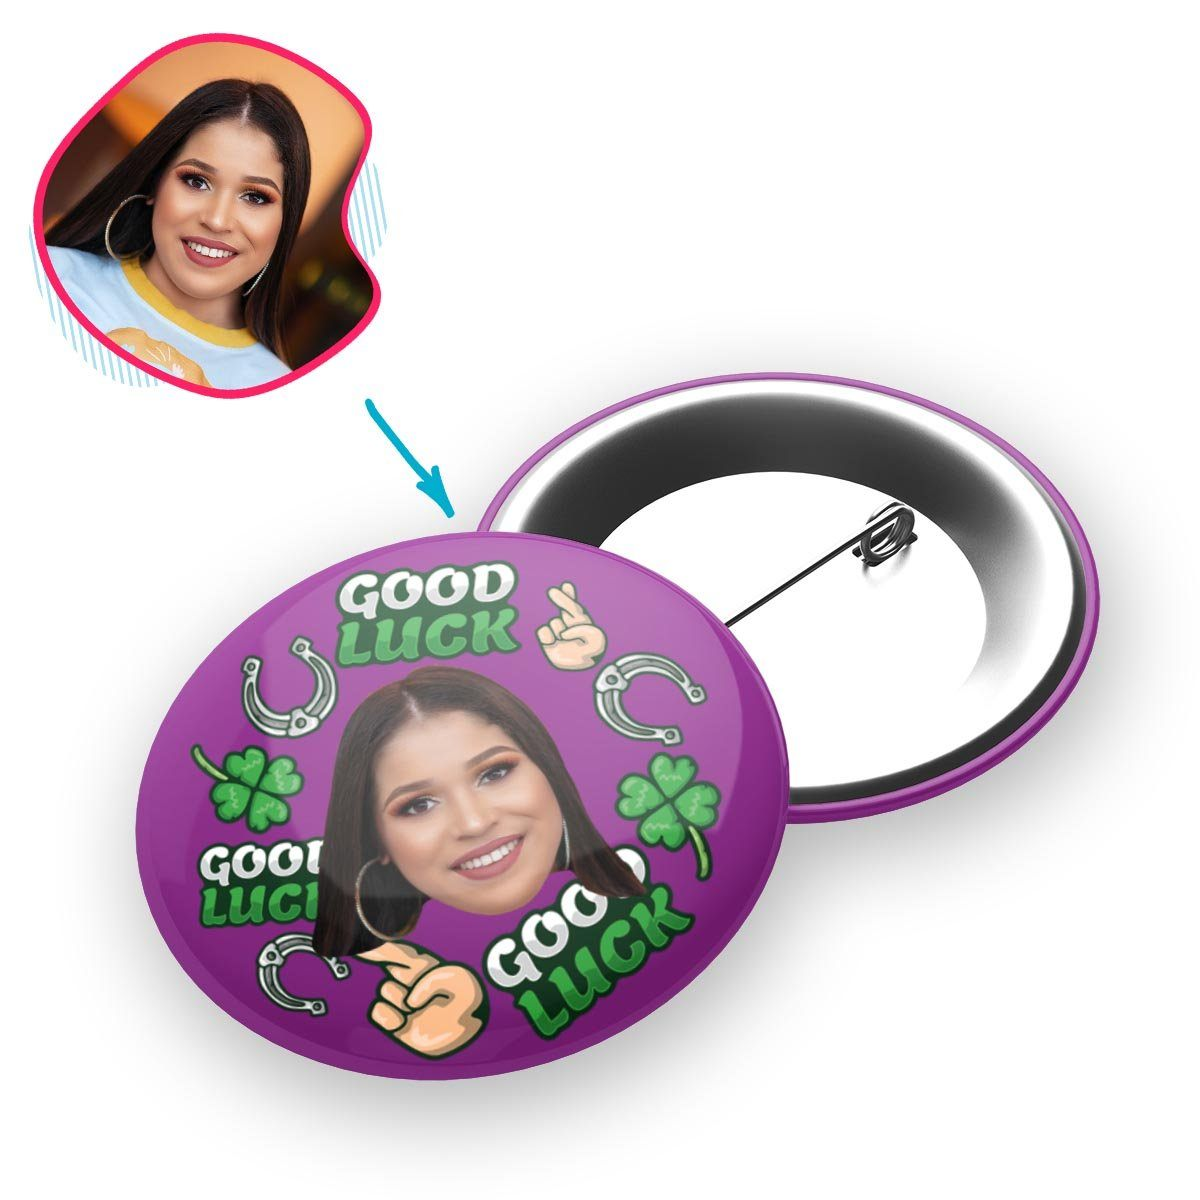 Good Luck Personalized Pin Button